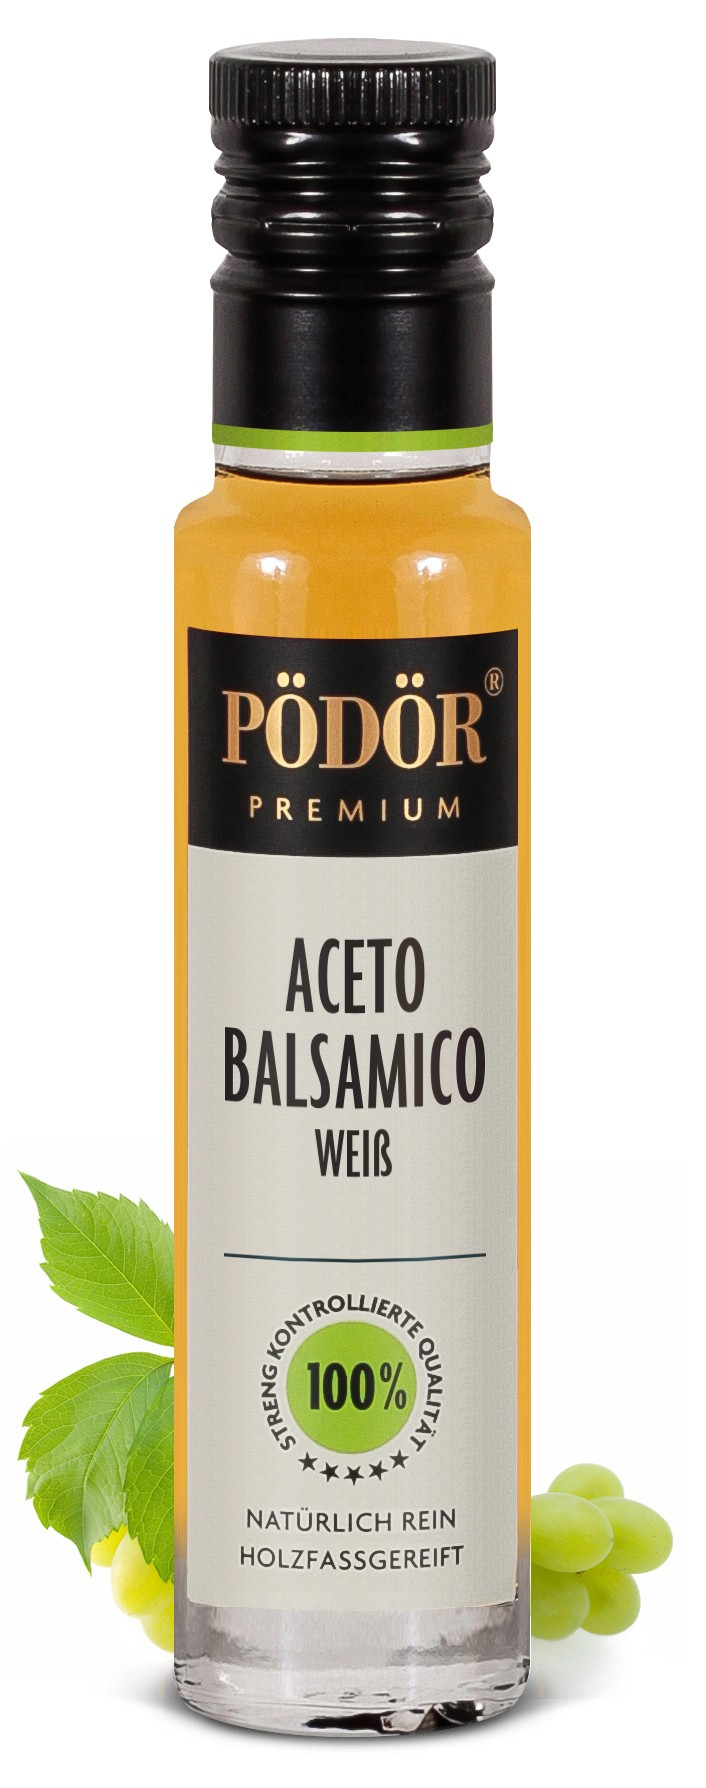 Aceto Balsamico Weiss